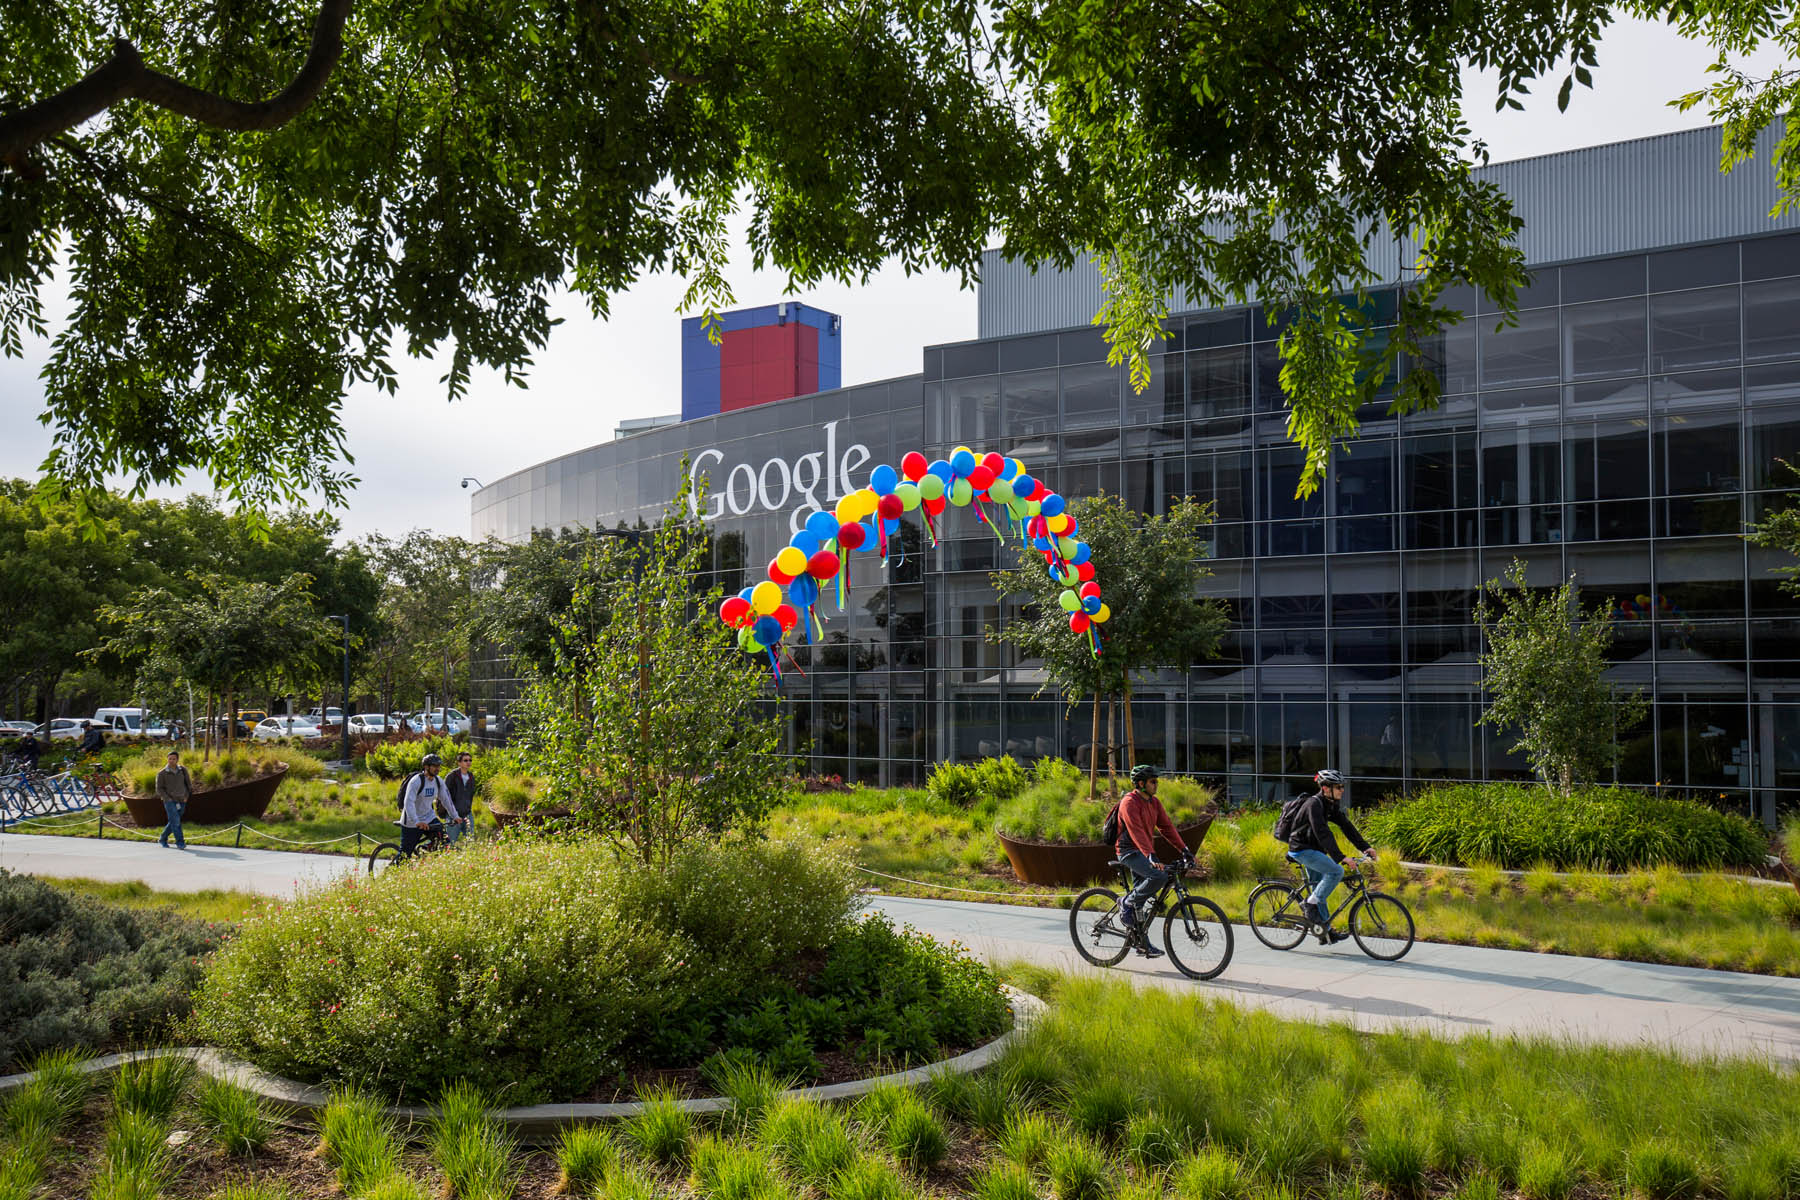 The Googleplex is the corporate headquarters complex of Google, Inc., located in Mountain View, California.